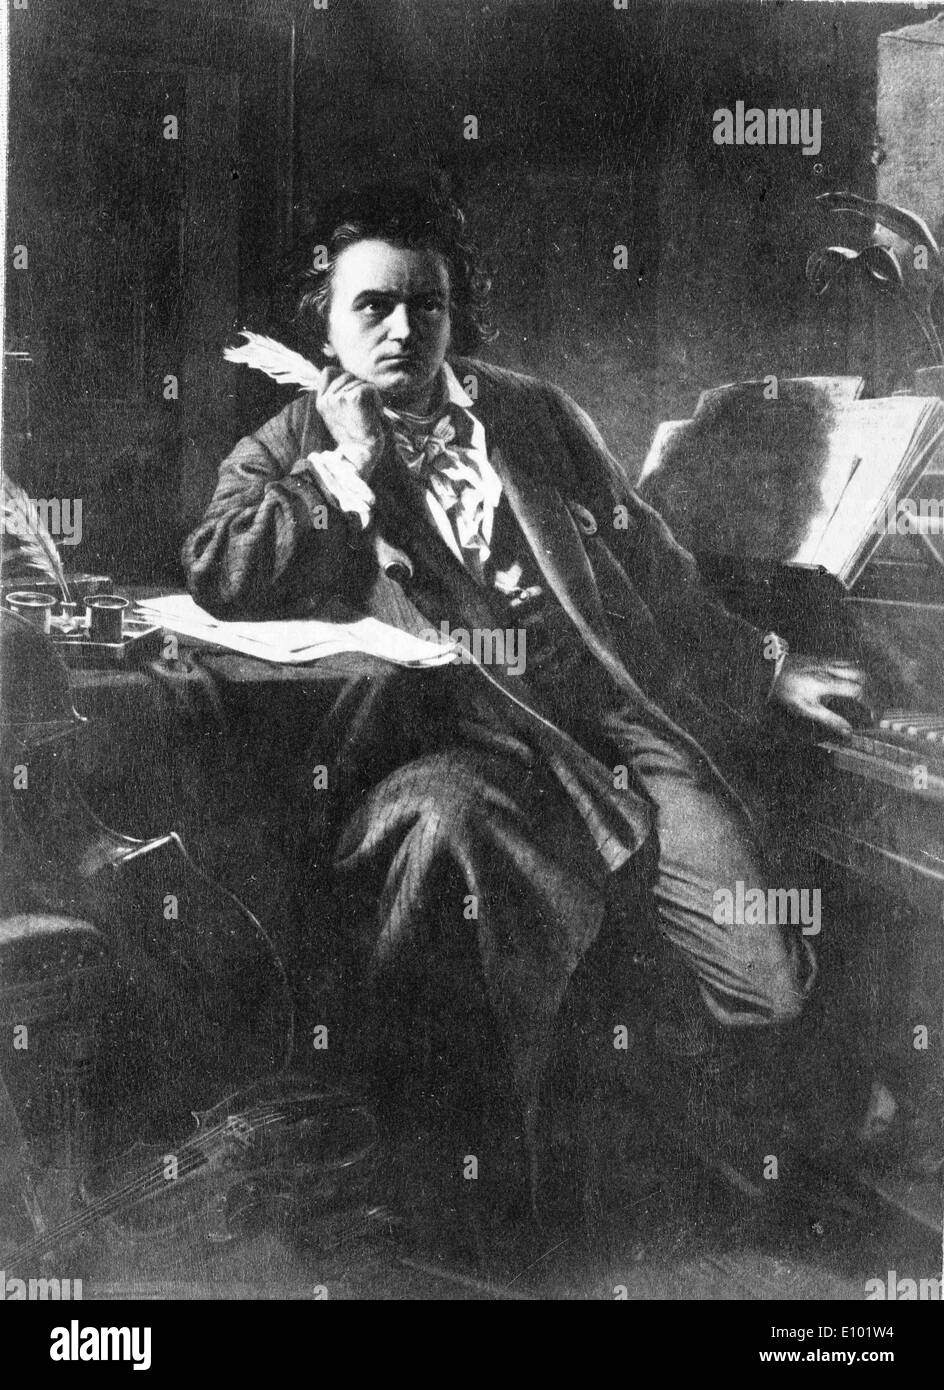 LUDWIG VAN BEETHOVEN was a German composer and pianist. - Stock Image